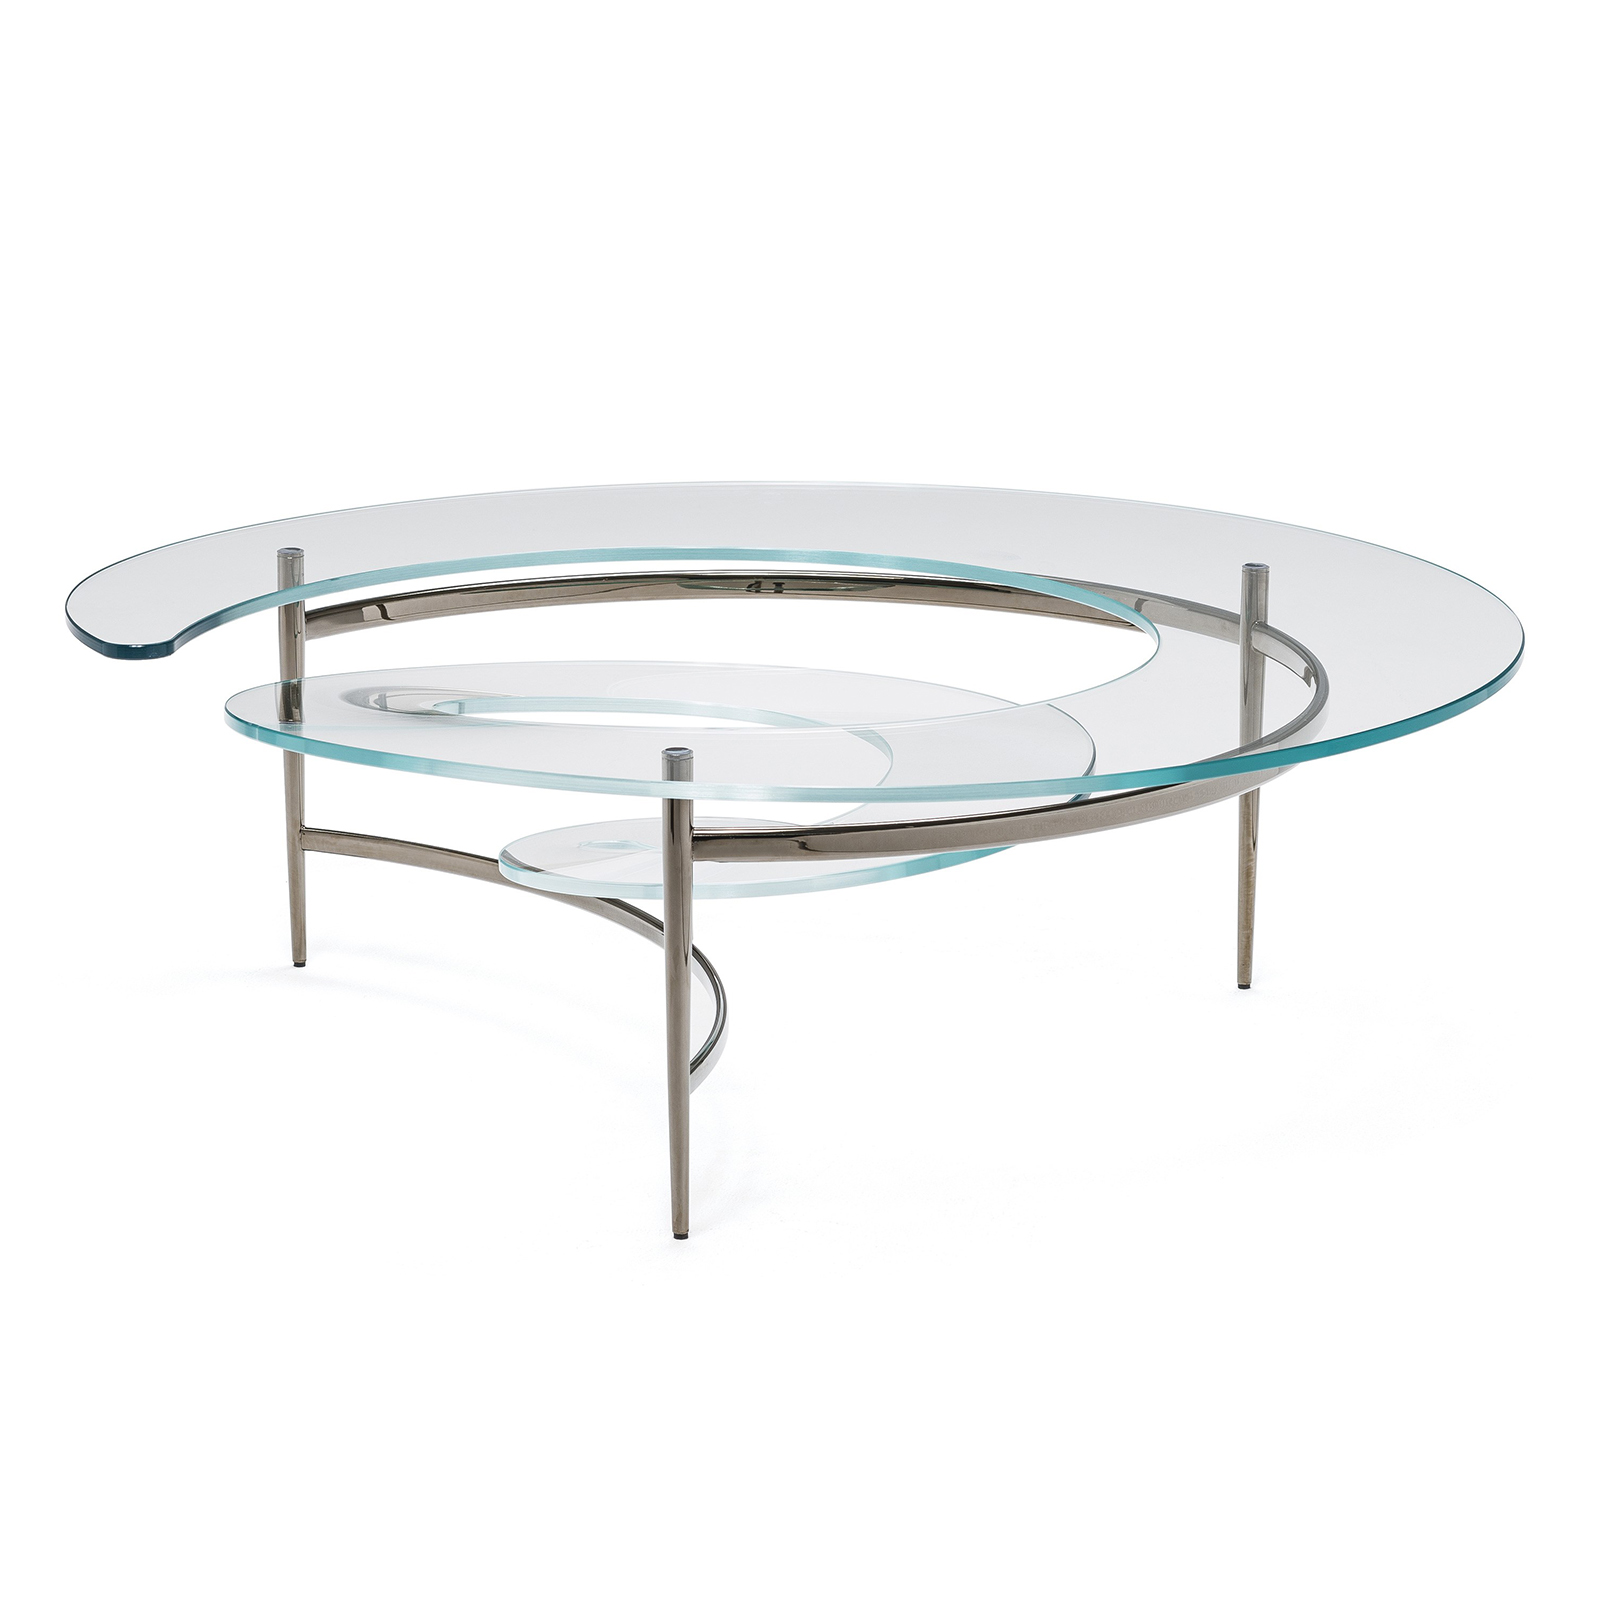 Table basse verre design table basse design en verre - Tables basses design en verre ...